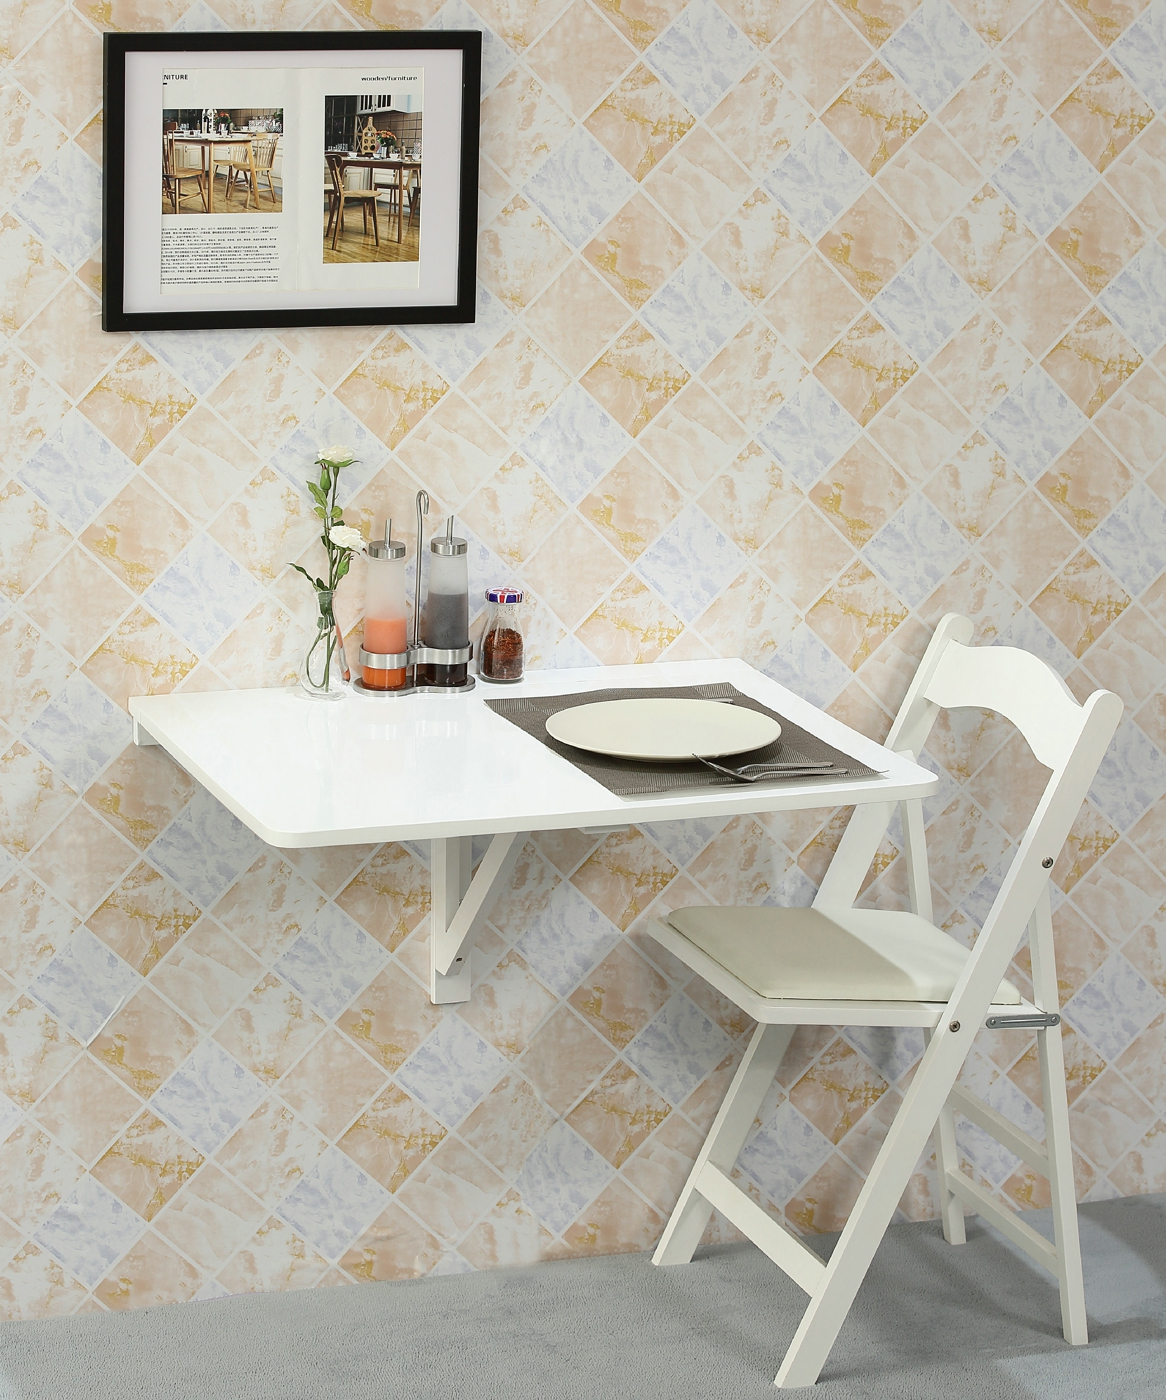 Orolay wall mounted drop leaf folding white kitchen dining table ebay - Wall mounted drop leaf table white ...